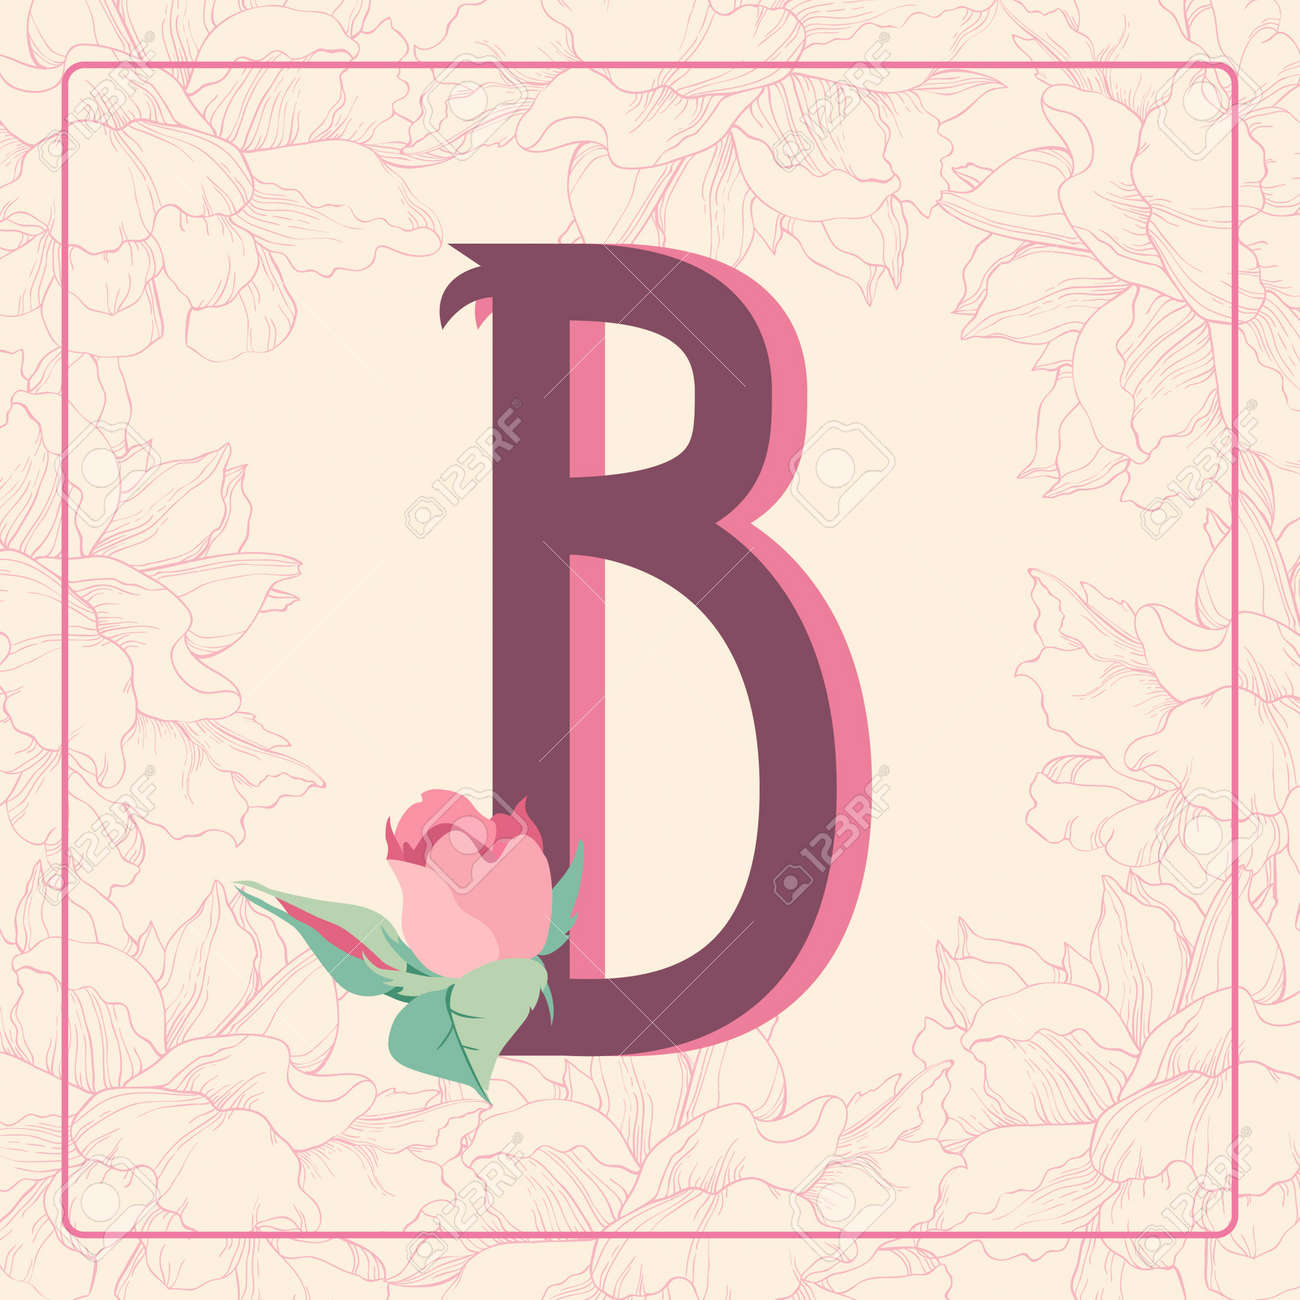 Vintage style letter b with rose flowers in floral frame